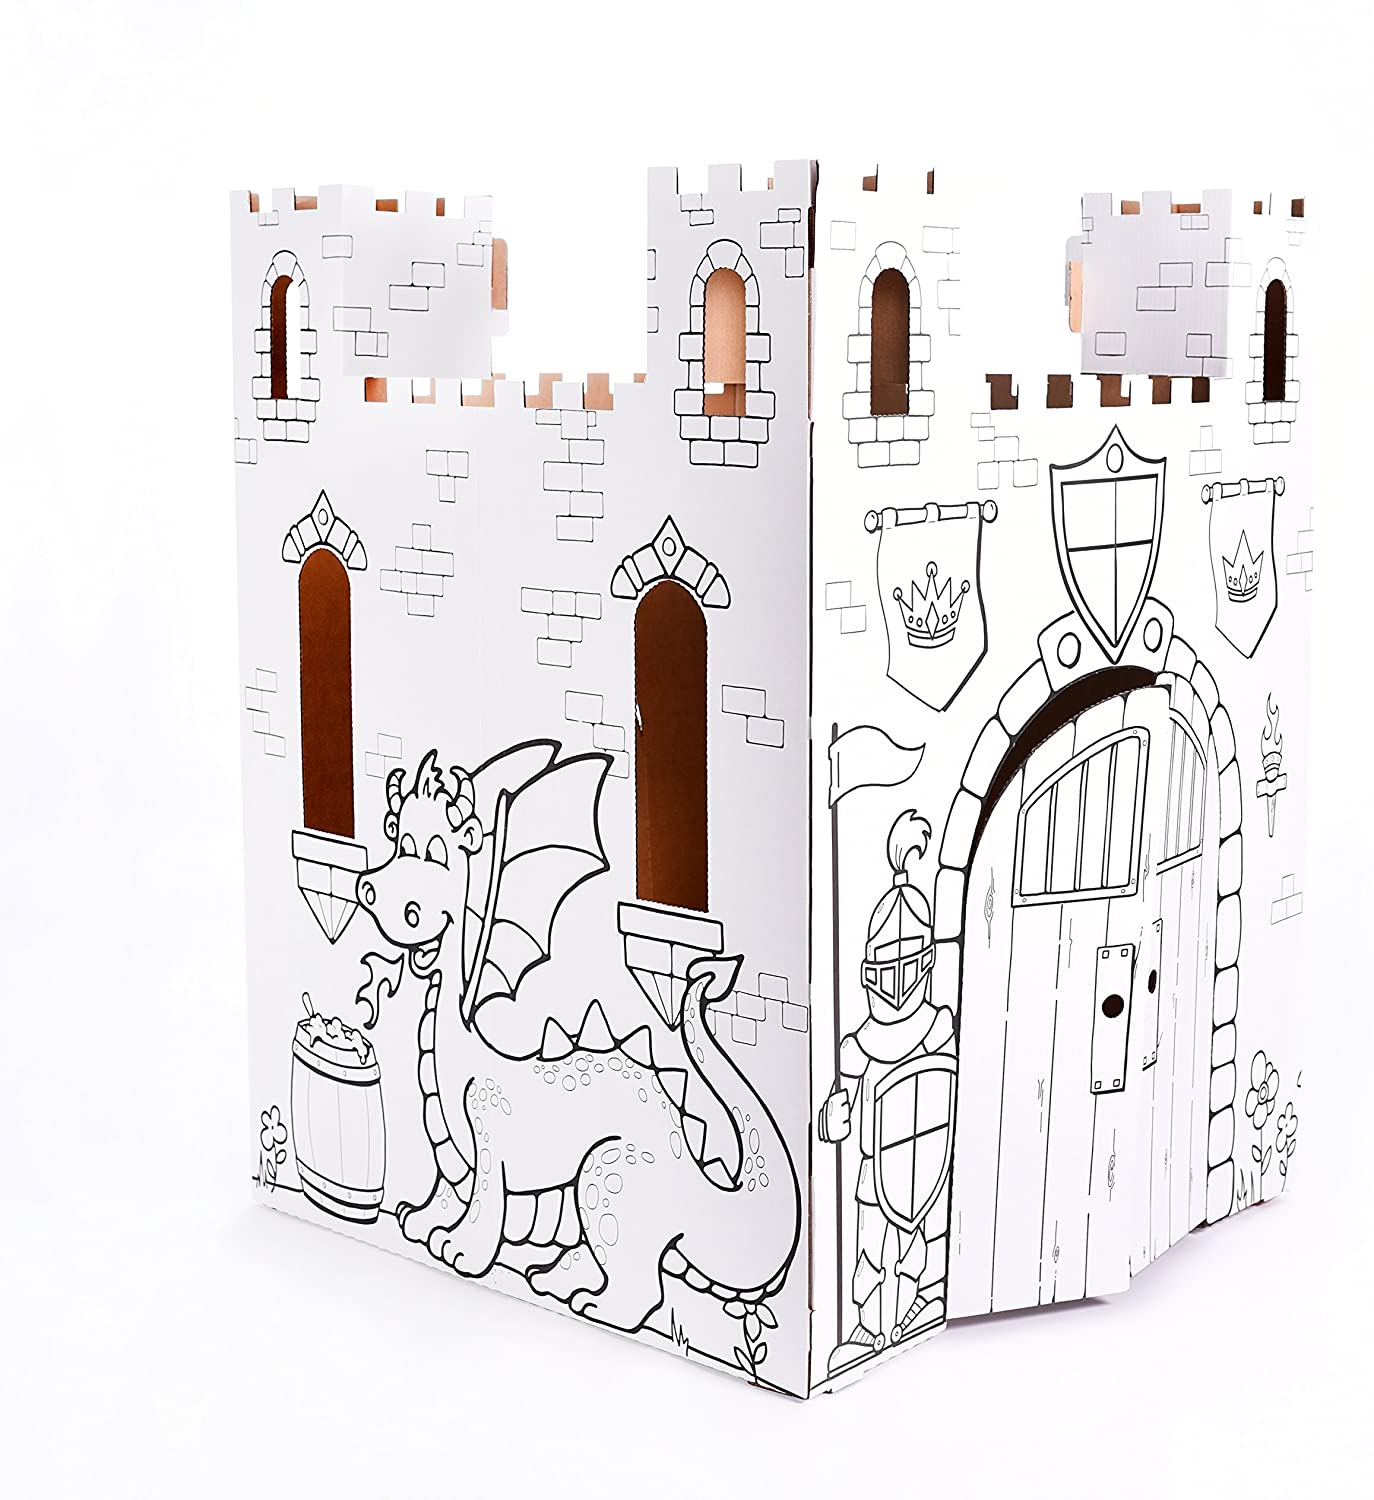 Amazon Com Easy Playhouse Fairy Tale Castle Kids Art Craft For Indoor Outdoor Fun Color Draw Doodle Decorate Personalize A Cardboard Fort 32 X 32 X 43 5